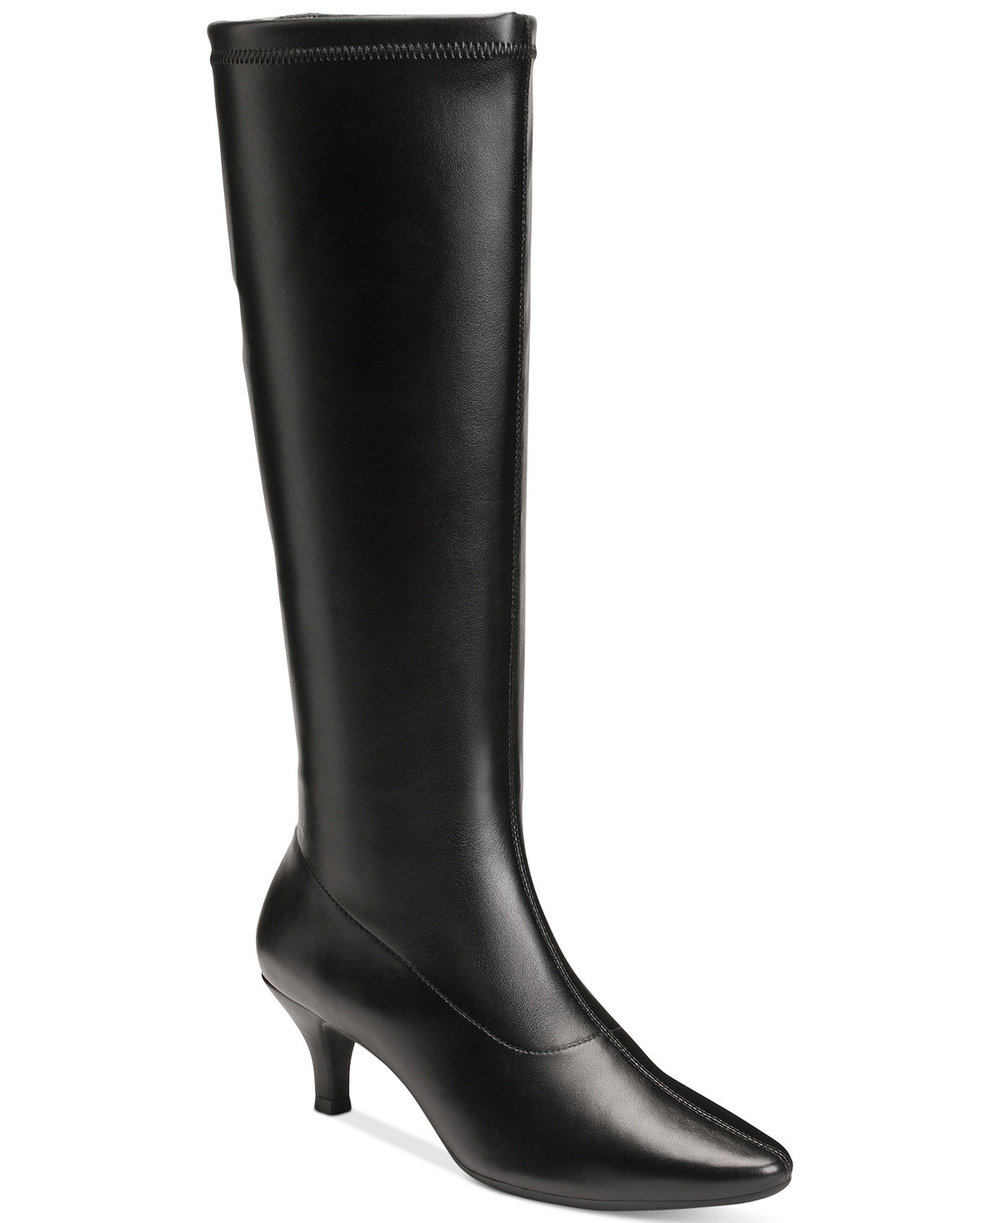 "https://www.macys.com/shop/product/aerosoles-afterward-tall-boots?ID=2935907&CategoryID=25122&swatchColor=Black#fn=SIZE%3DWOMEN_SHOE_SIZE_T%3A7.5%26BOOTS_TYPE%3DDress Boots%26BOOT_HEIGHT%3DTall%26COLOR%3DBlack;;Blue%26HEEL%3DLow 1-2"";;Mid 2-3""%26sp%3D1%26spc%3D31%26ruleId%3D78